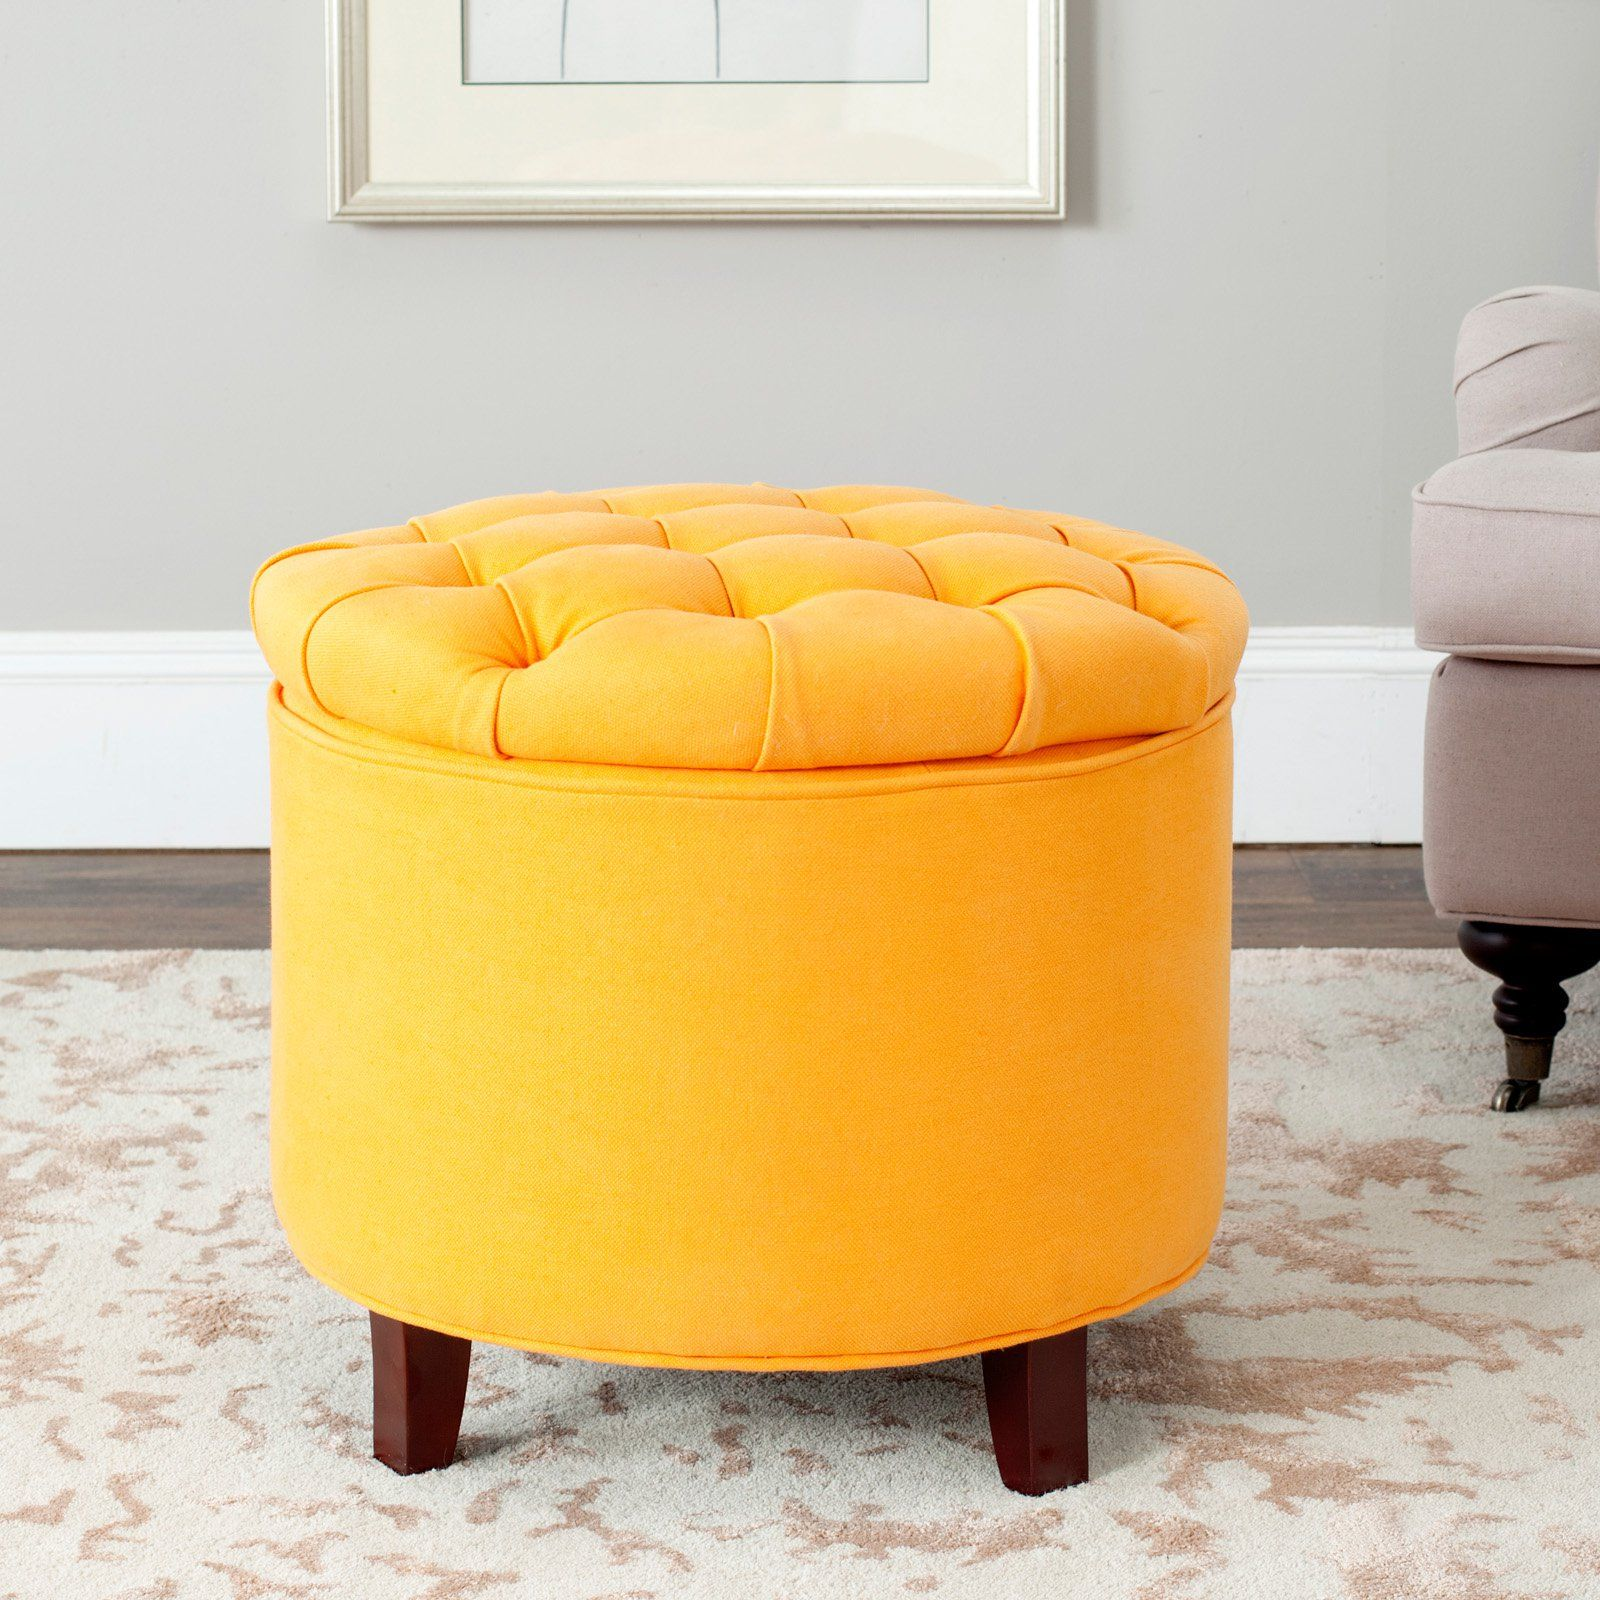 Peachy Safavieh Amelia Tufted Storage Ottoman Tangerine Products Gmtry Best Dining Table And Chair Ideas Images Gmtryco